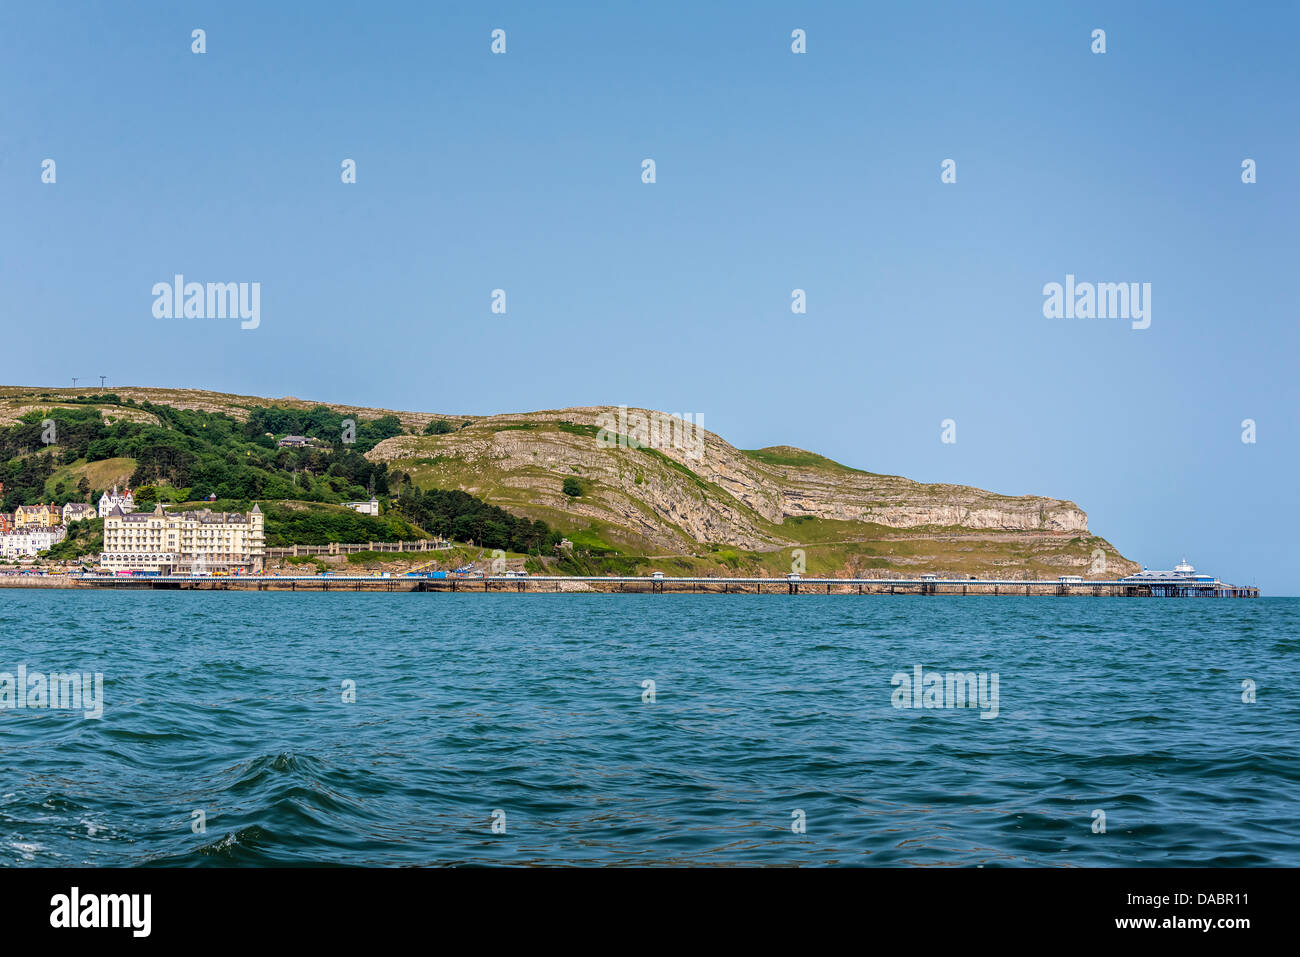 Llandudno pier and the Great Orme on the East Bay of the North Wales seaside town. Clwyd - Stock Image